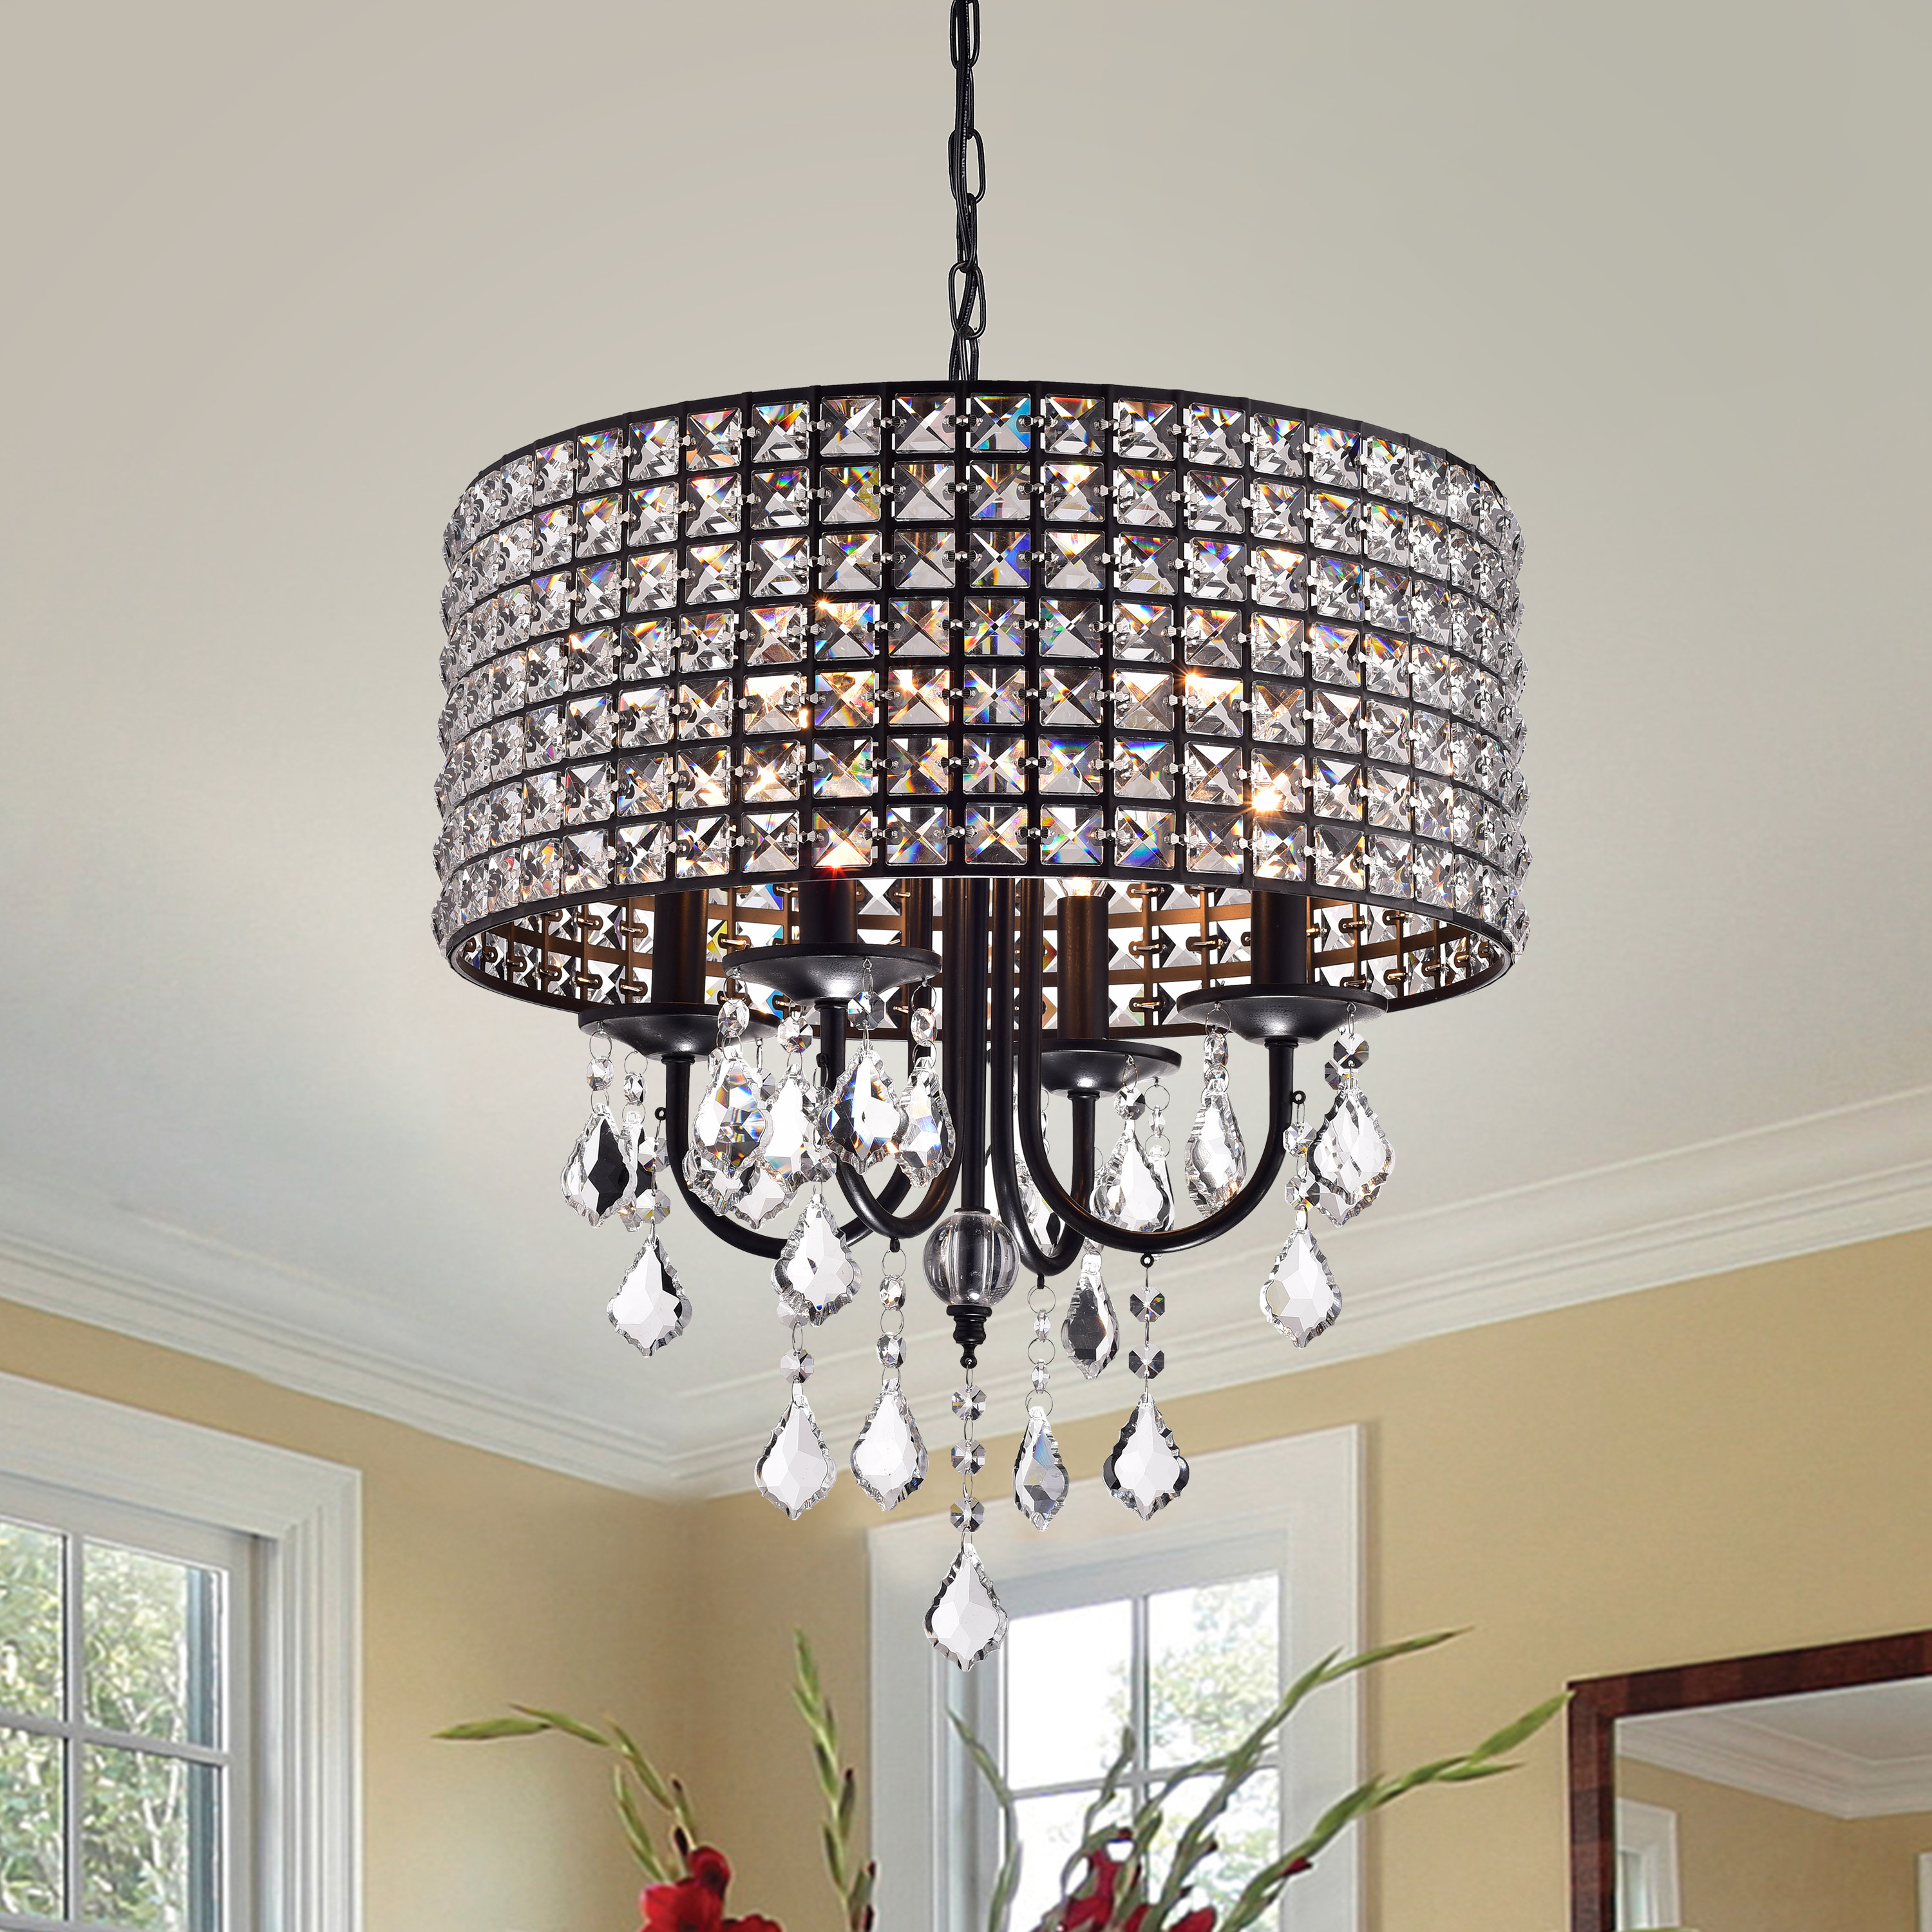 Albano 4 Light Crystal Chandelier Pertaining To Well Known Benedetto 5 Light Crystal Chandeliers (View 14 of 20)